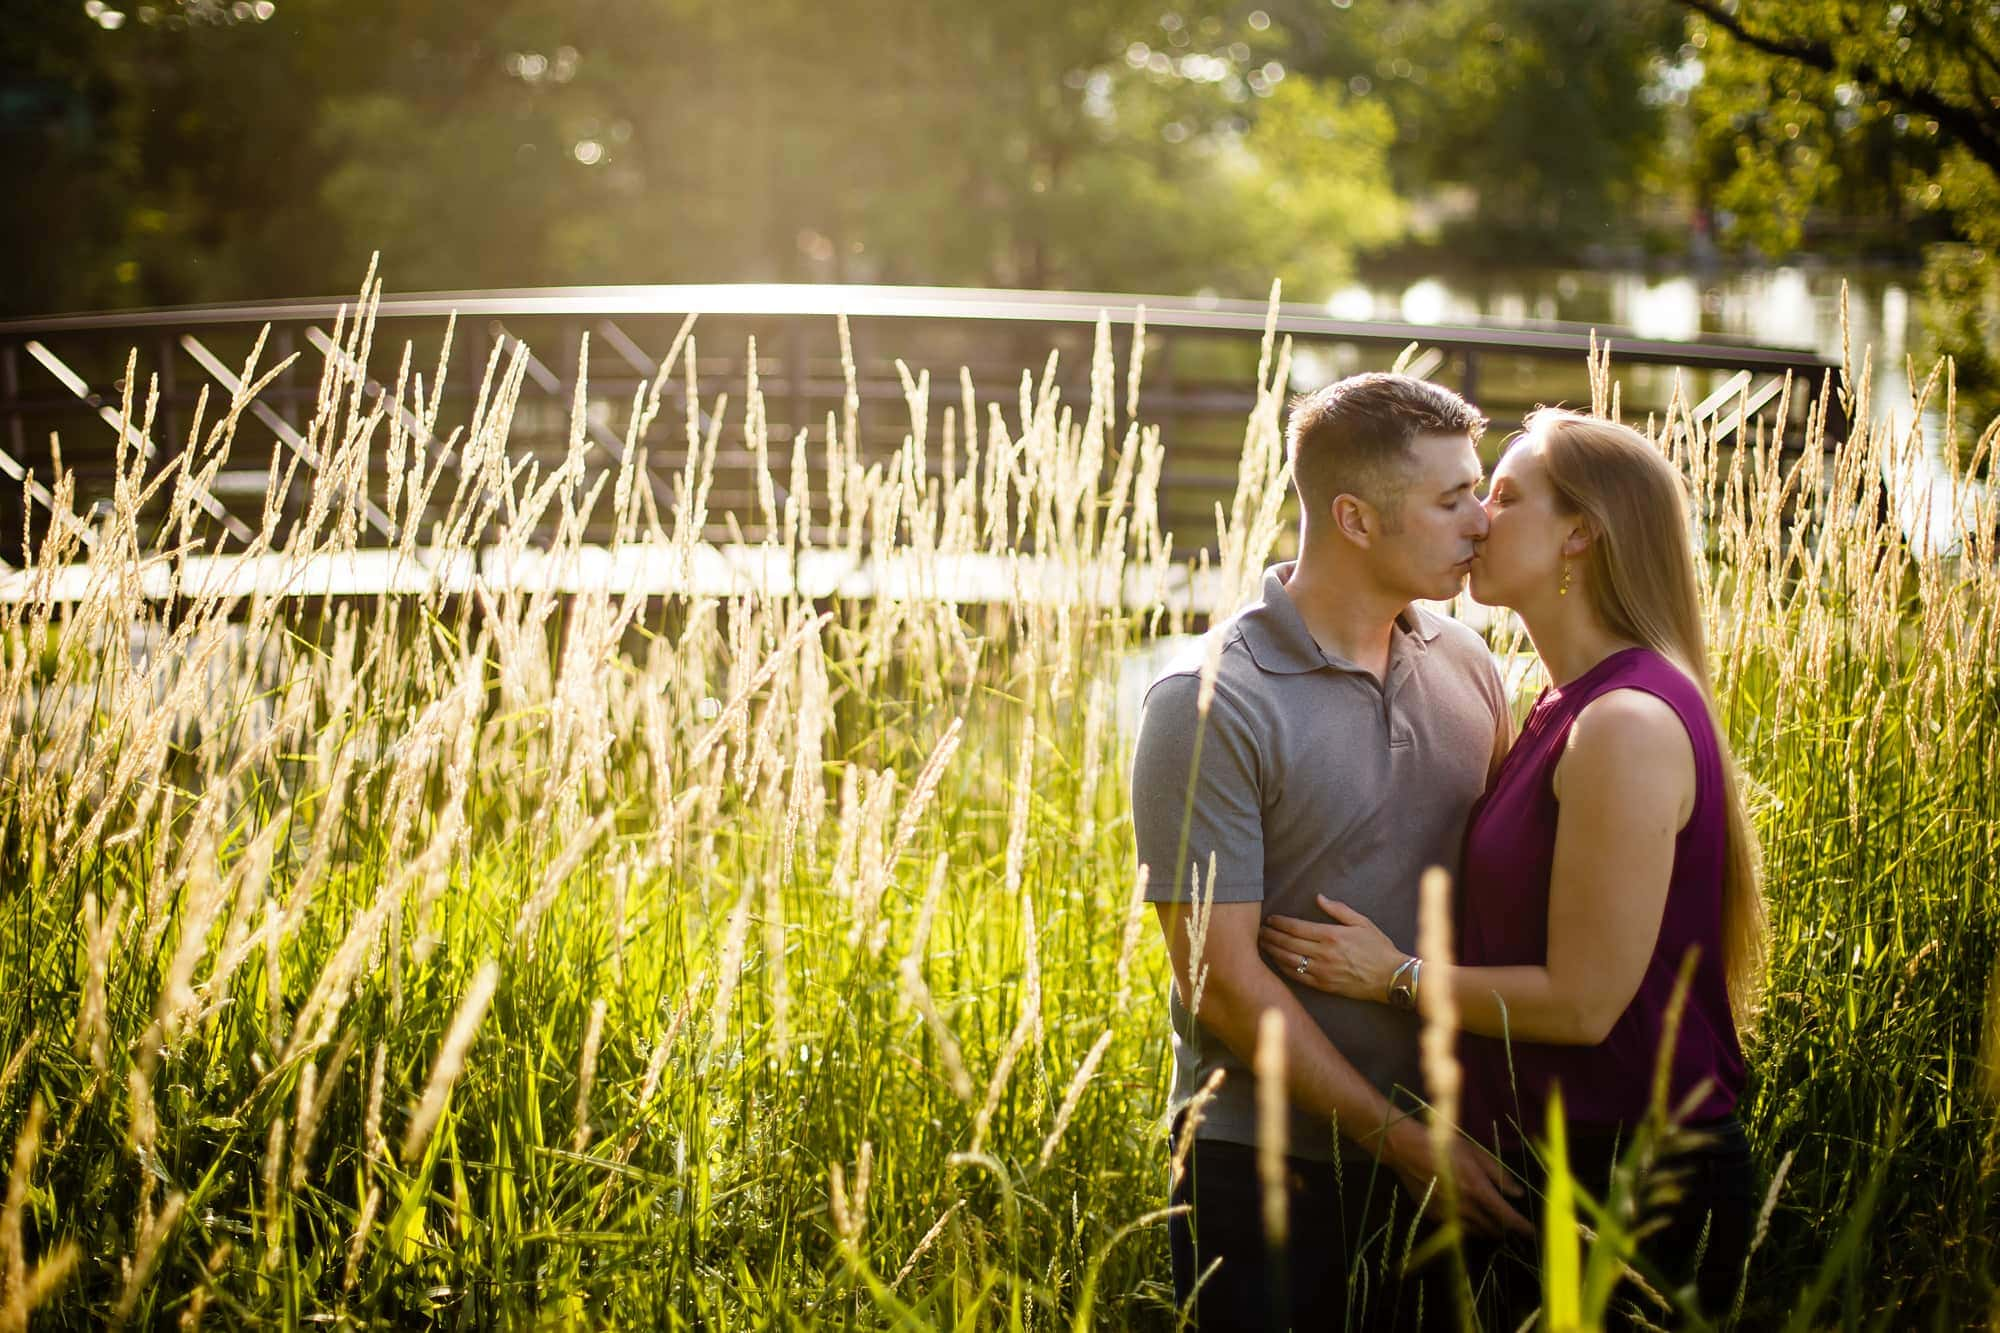 Megan and Bill share a kiss in the long grass along the stream at Sterne Park in Littleton during their engagement session.